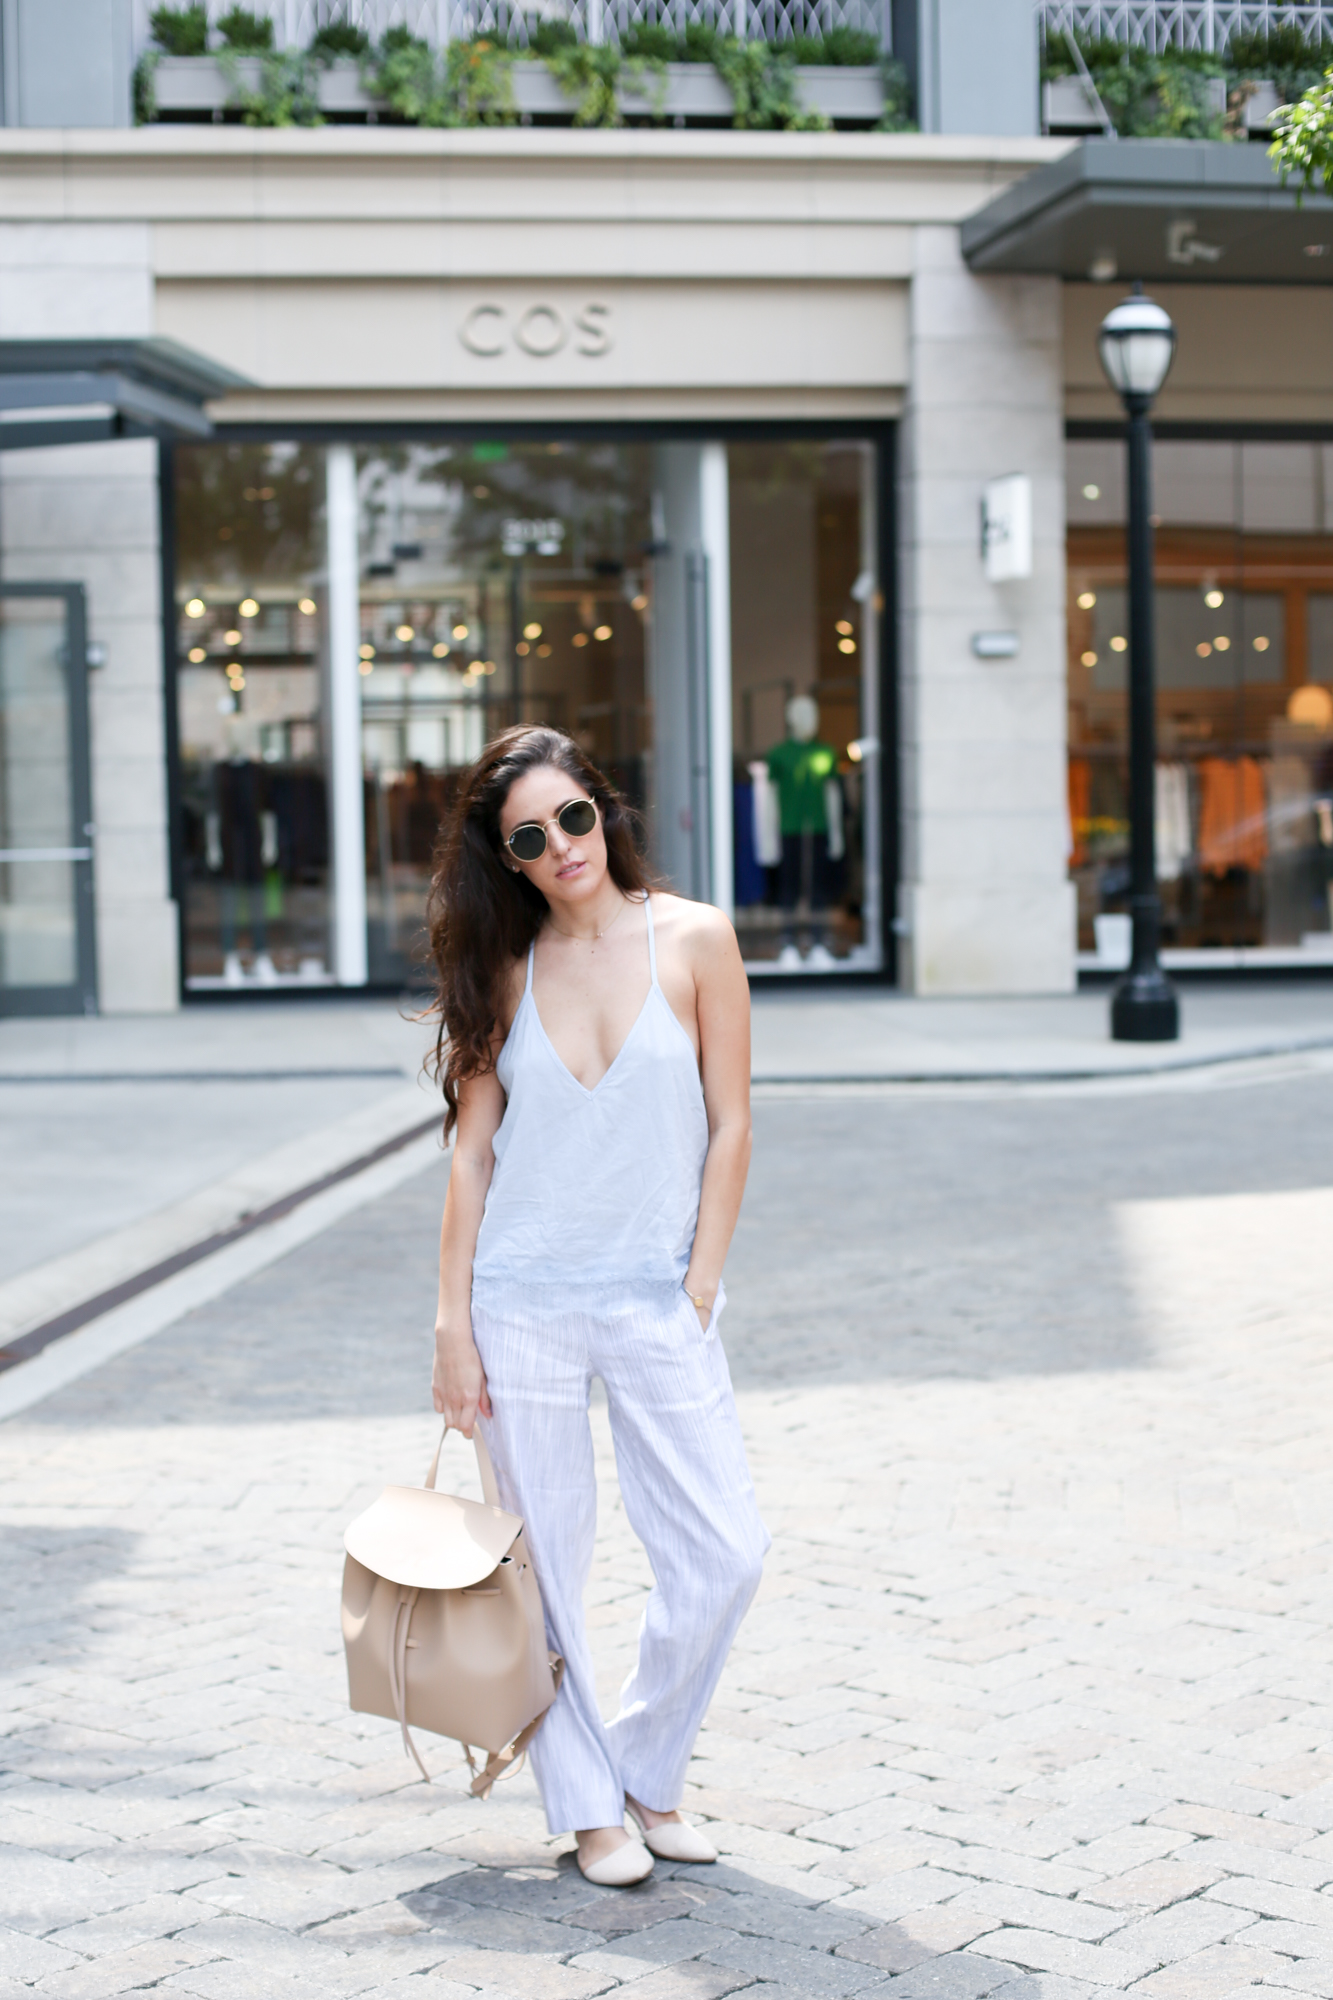 how to wear pajamas in the daytime, how to wear pajamas in public, how to style pajamas, chic pajama style, comfortable chic, armadio backpack, baby blue outfit ideas, casual outfit ideas, comfortable outfit ideas